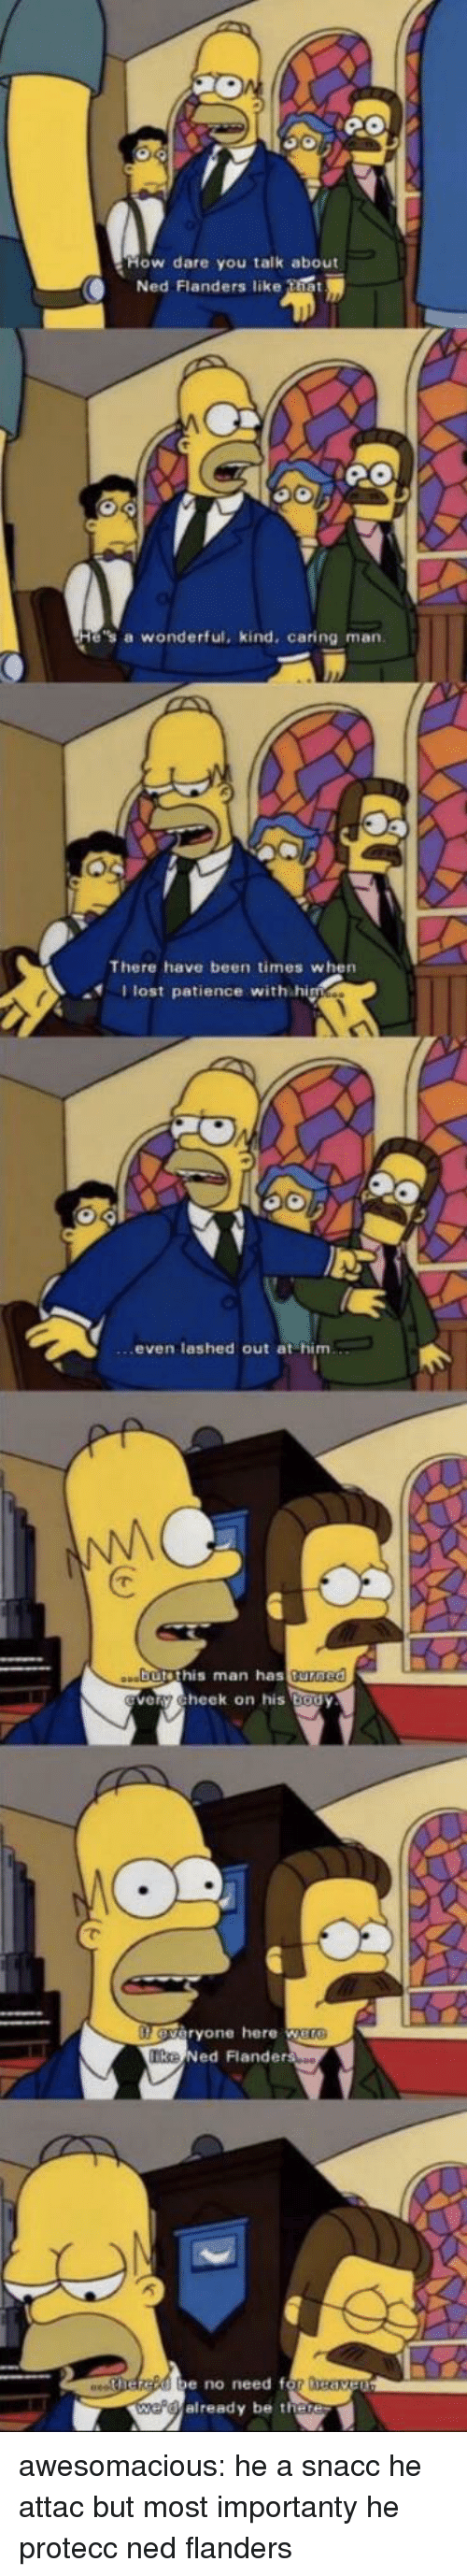 Ned Flanders, Tumblr, and Lost: How dare you taik about  Ned Flanders like that  e's a wonderful, kind, caring man  There have been times when  lost patience with hi  even lashed out at him  butethis man has tu  rned  veny Cheek on his body  eryone here  Ike  Ned Flander  e no need f  e Calready be there awesomacious:  he a snacc he attac but most importanty he protecc ned flanders